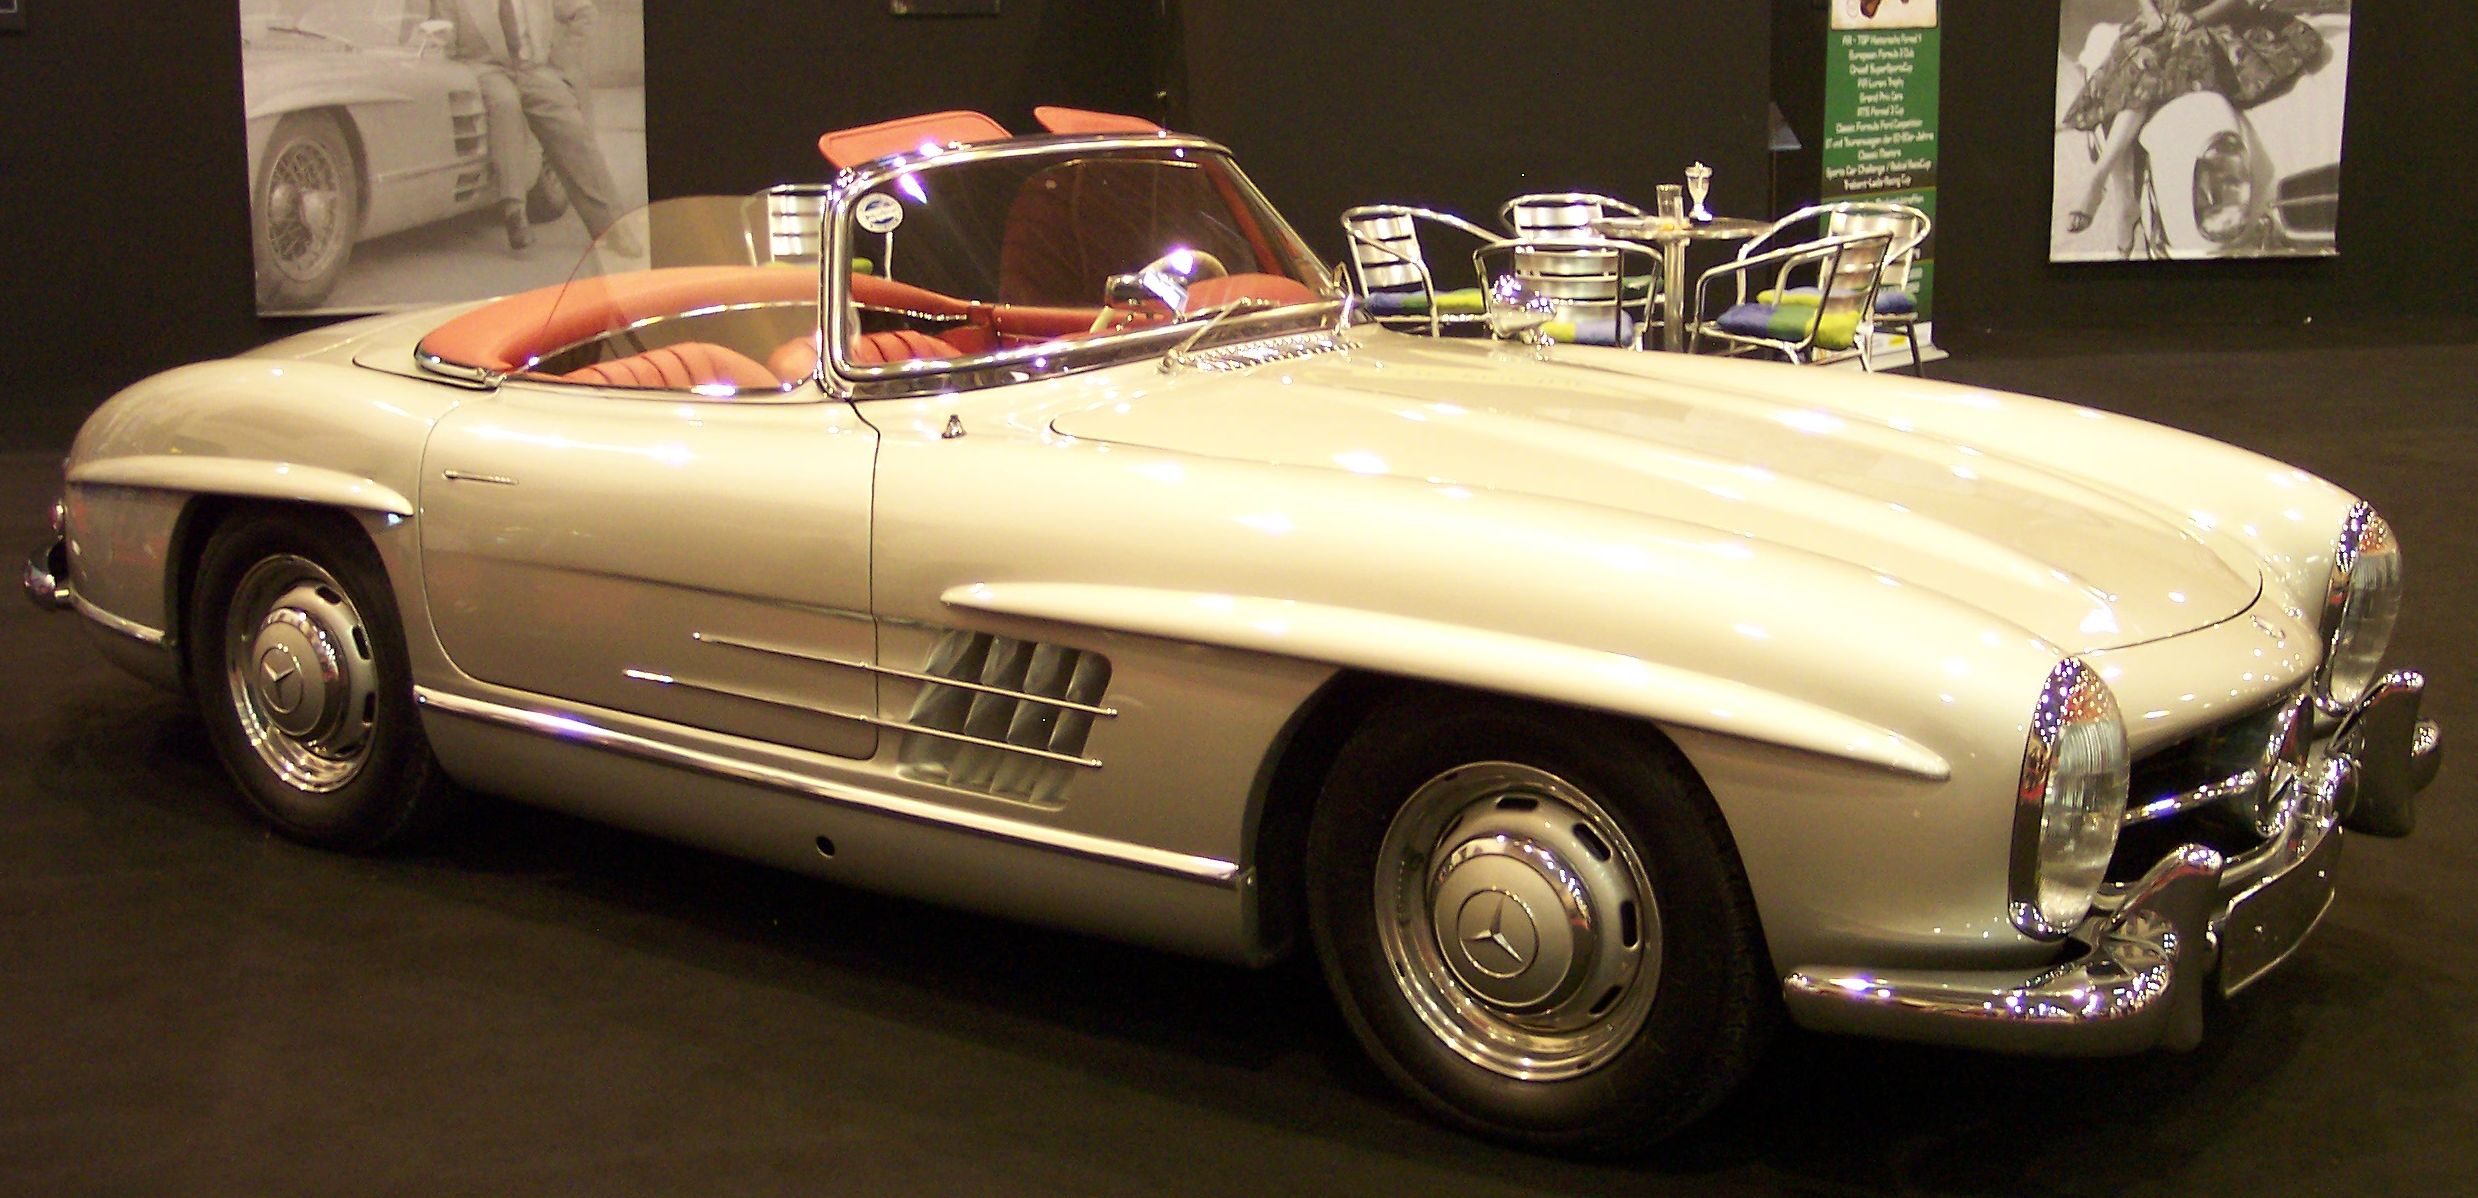 file mercedes 300sl cabrio vr silver wikimedia commons. Black Bedroom Furniture Sets. Home Design Ideas